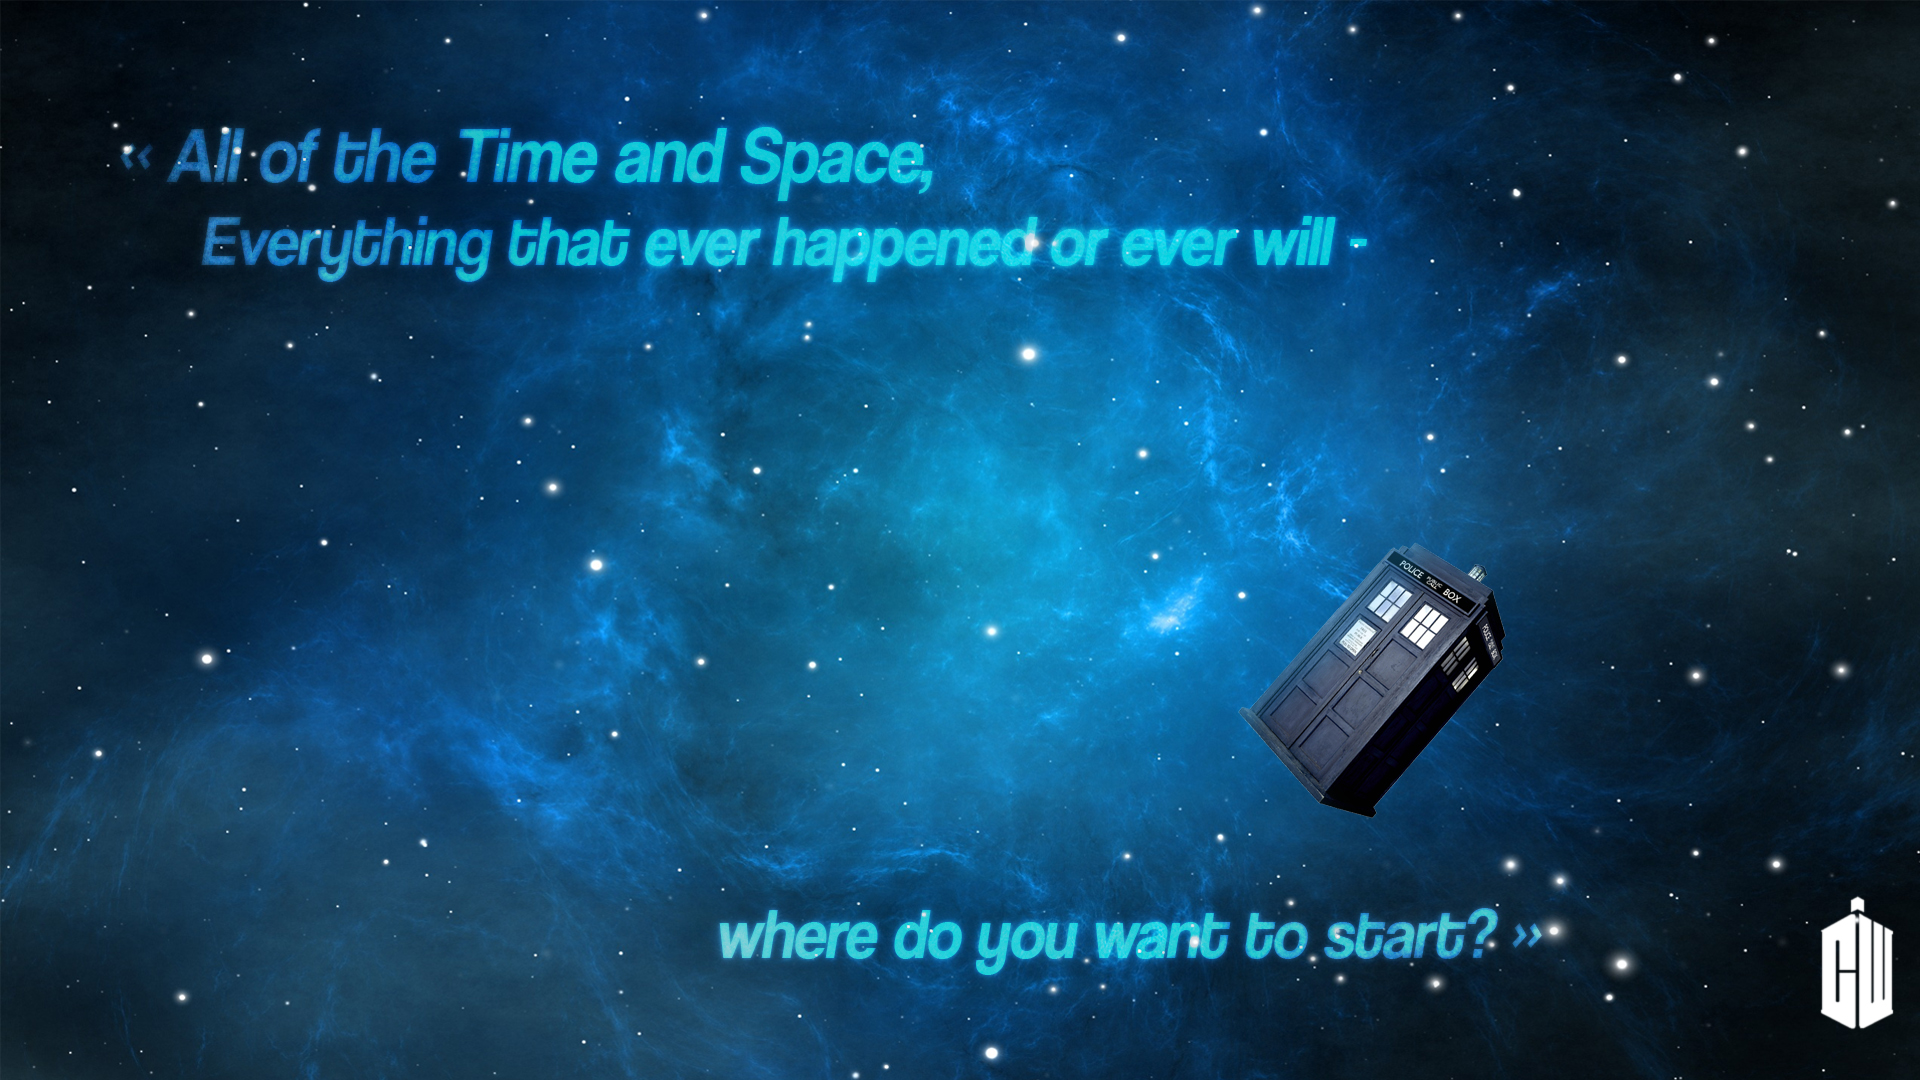 Doctor Who Wallpaper   All of the Time and Space by Darkounetlolz on 1920x1080